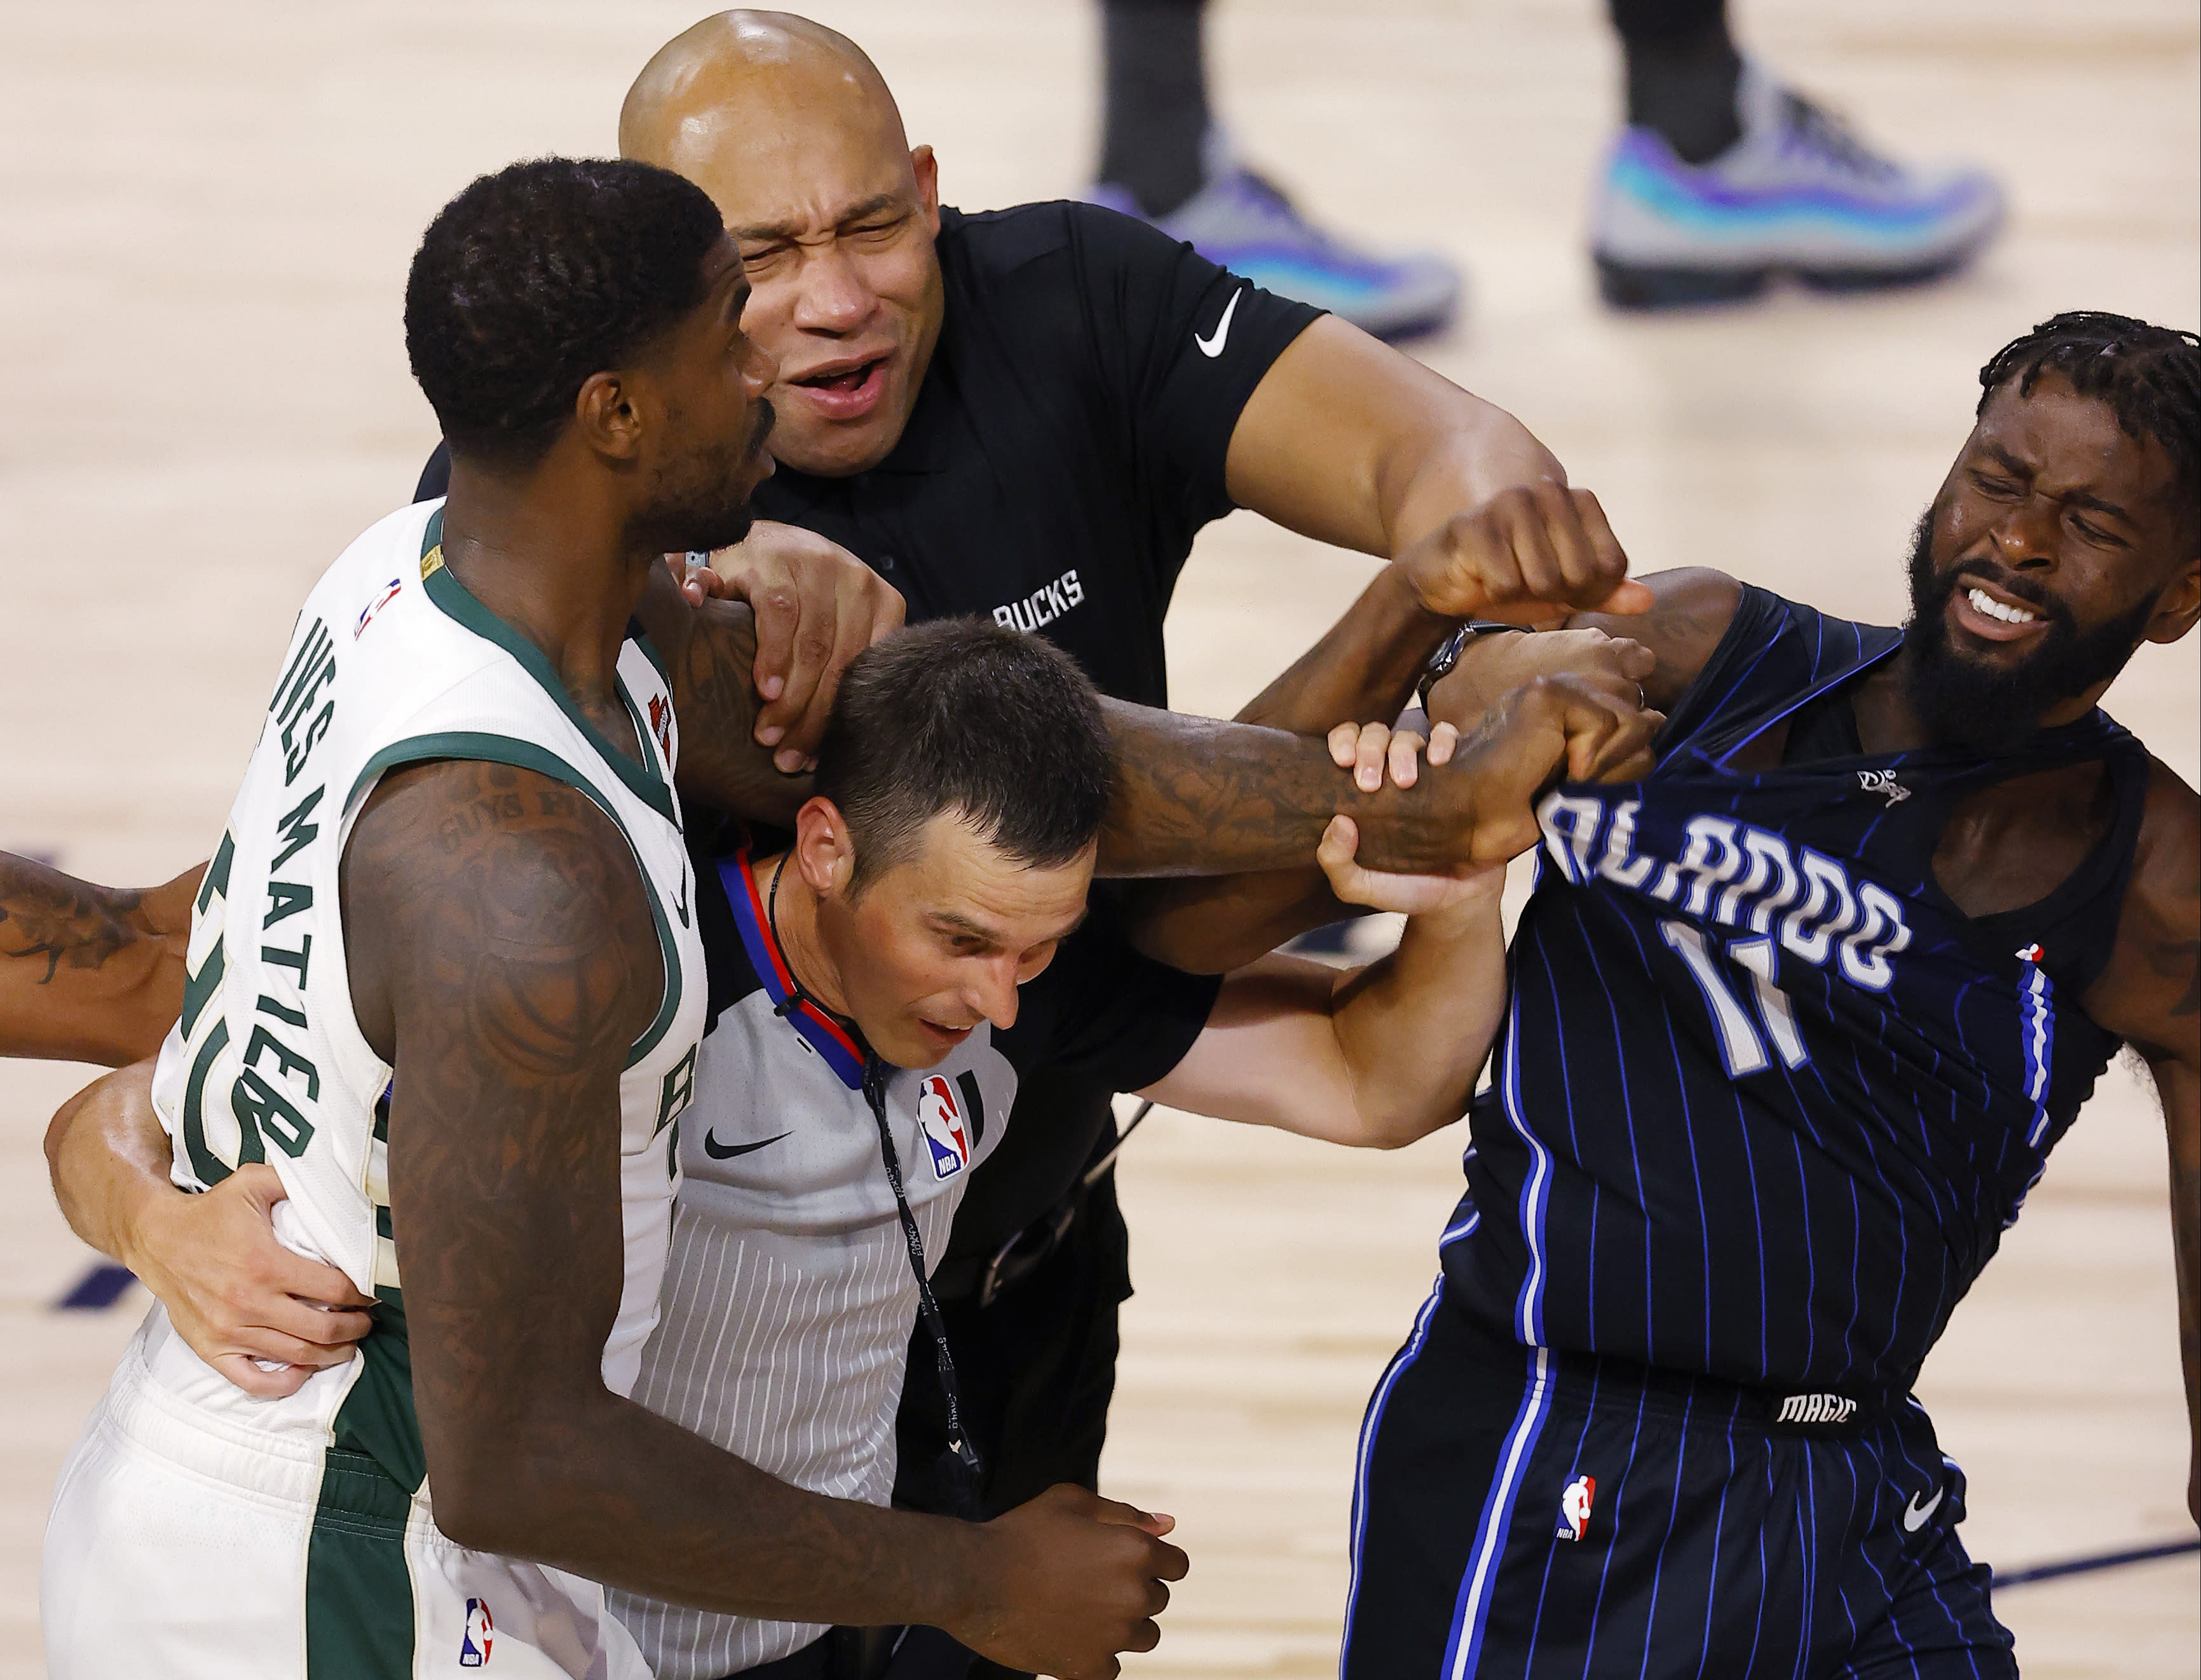 Milwaukee Bucks' Marvin Williams (20) grabs the jersey of Orlando Magic's James Ennis III (11) as referee Kevin Scott and Bucks assistant coach Darvin Ham tries to break it up during Game 3 of an NBA basketball first-round playoff series, Saturday, Aug. 22, 2020, in Lake Buena Vista, Fla. (Mike Ehrmann/Pool Photo via AP)